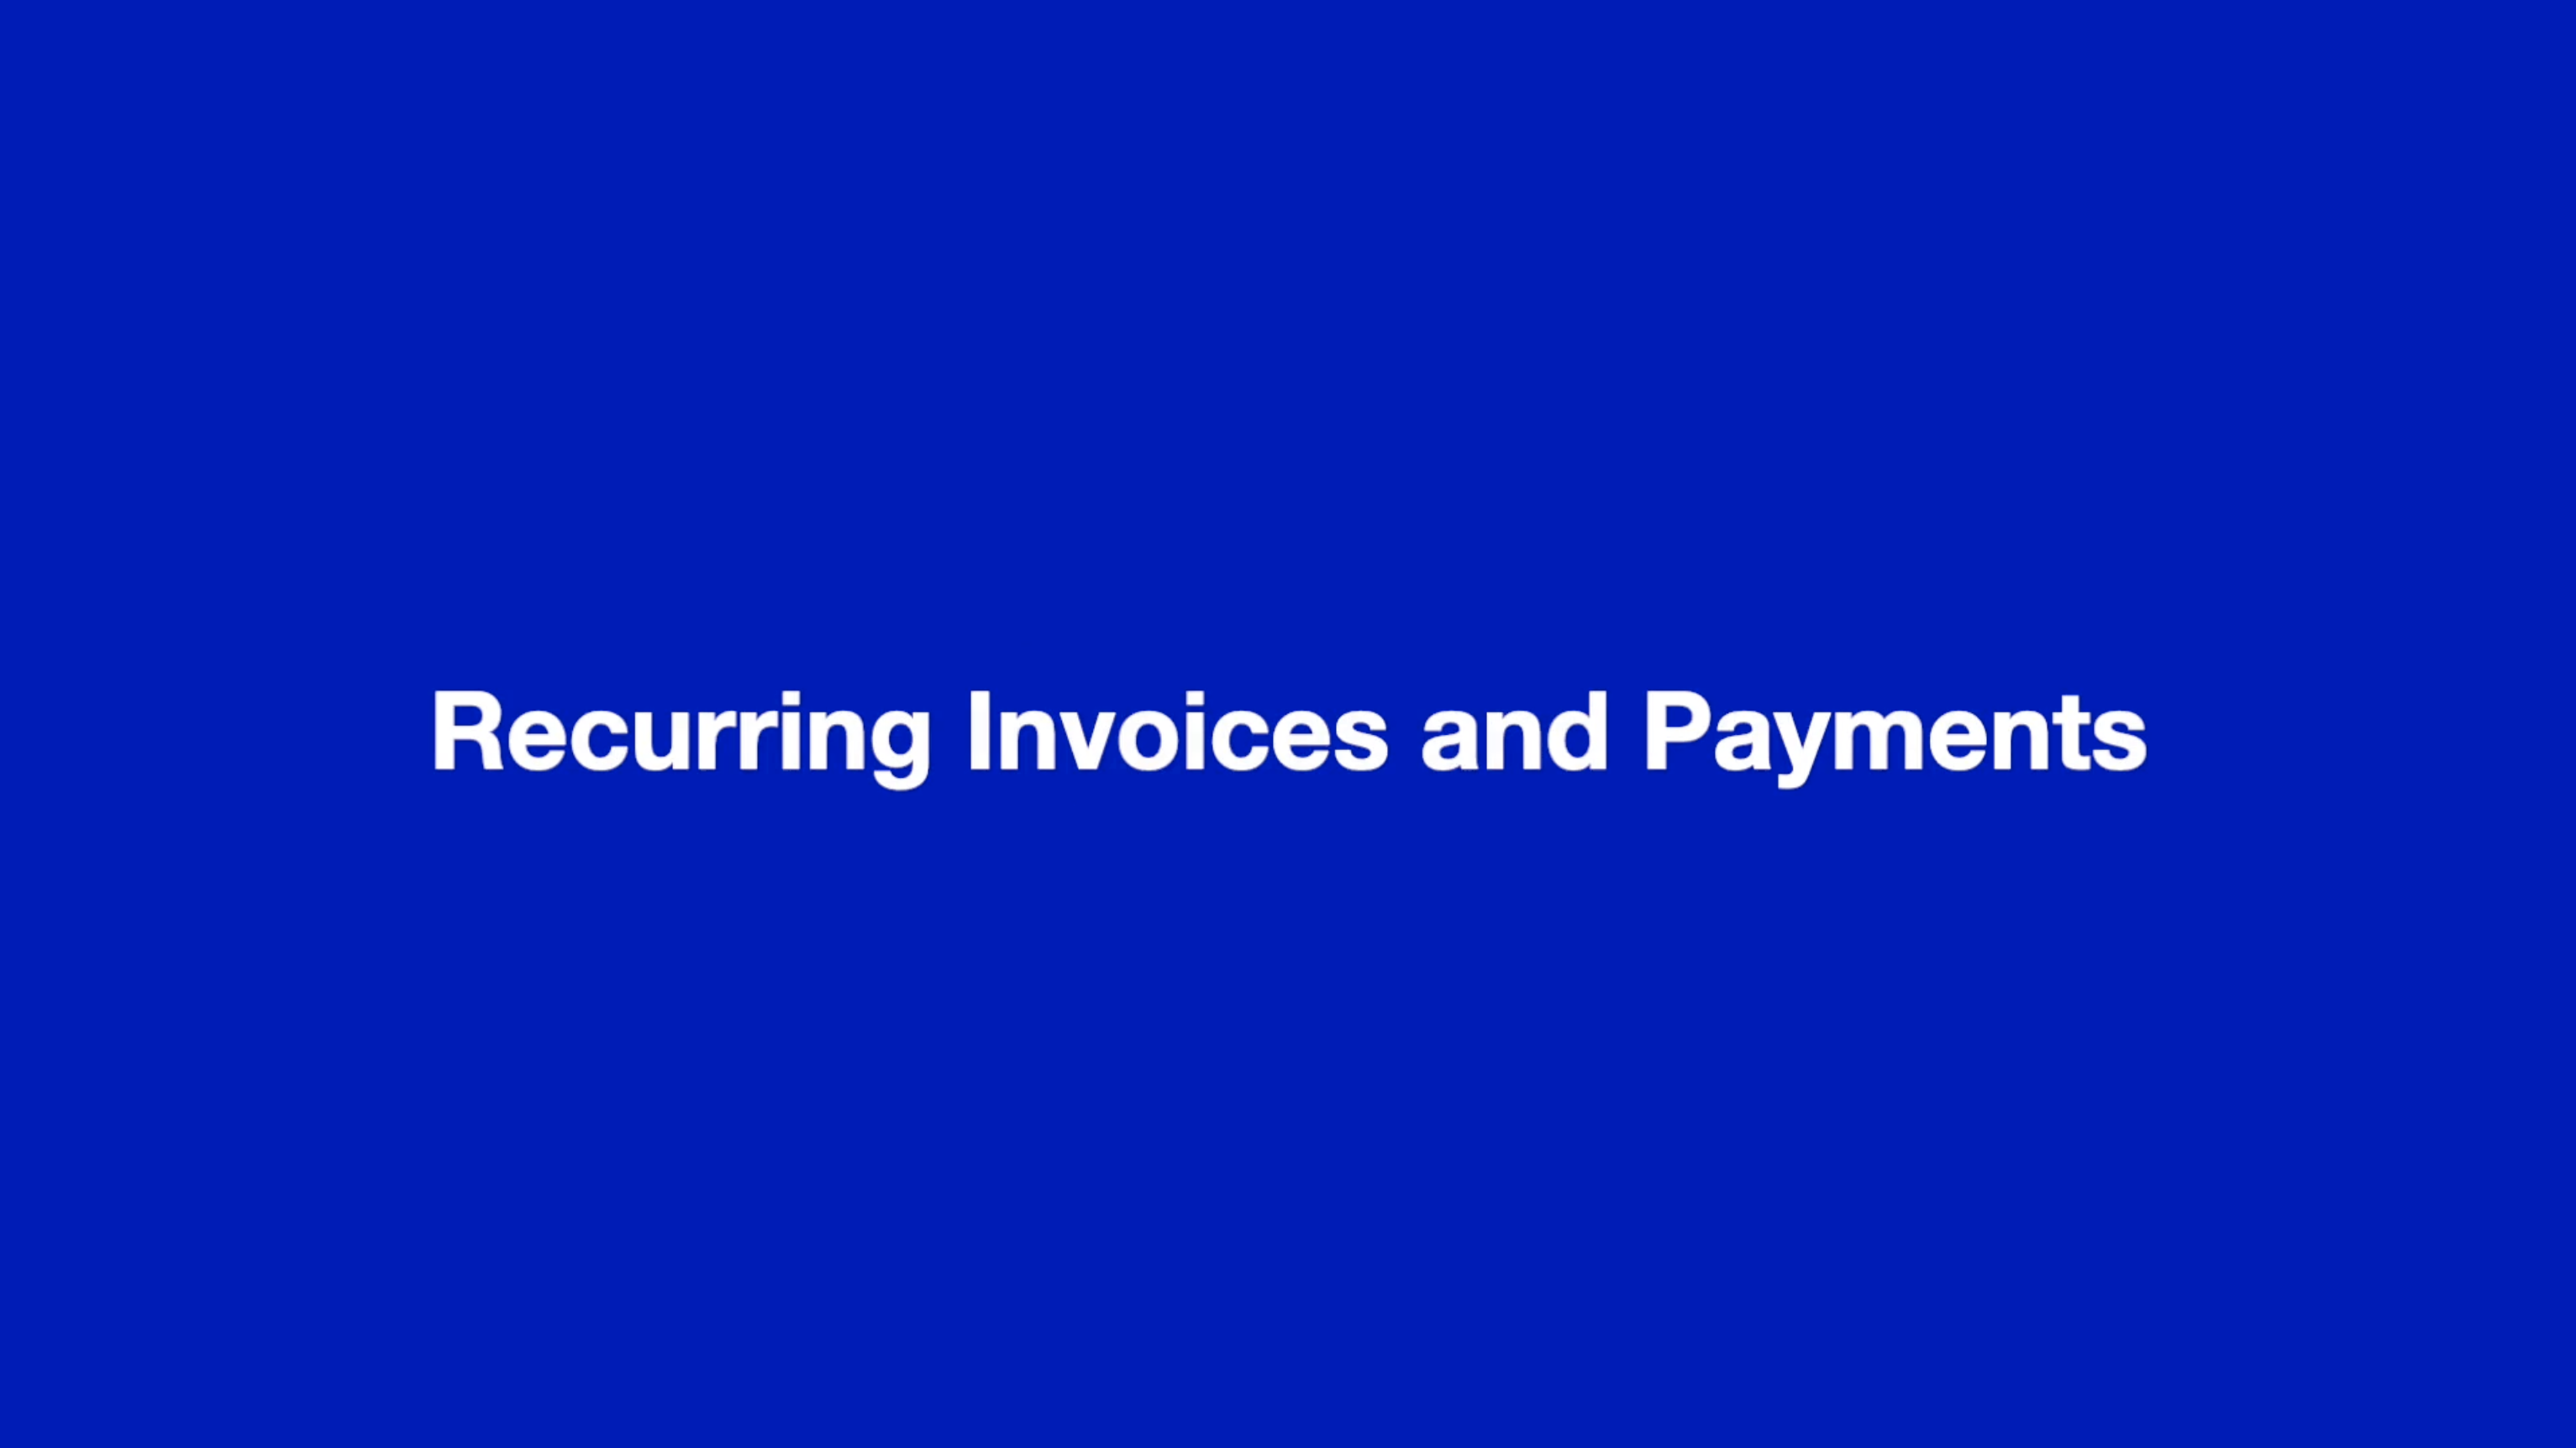 Recurring Invoices and Payments thumbnail